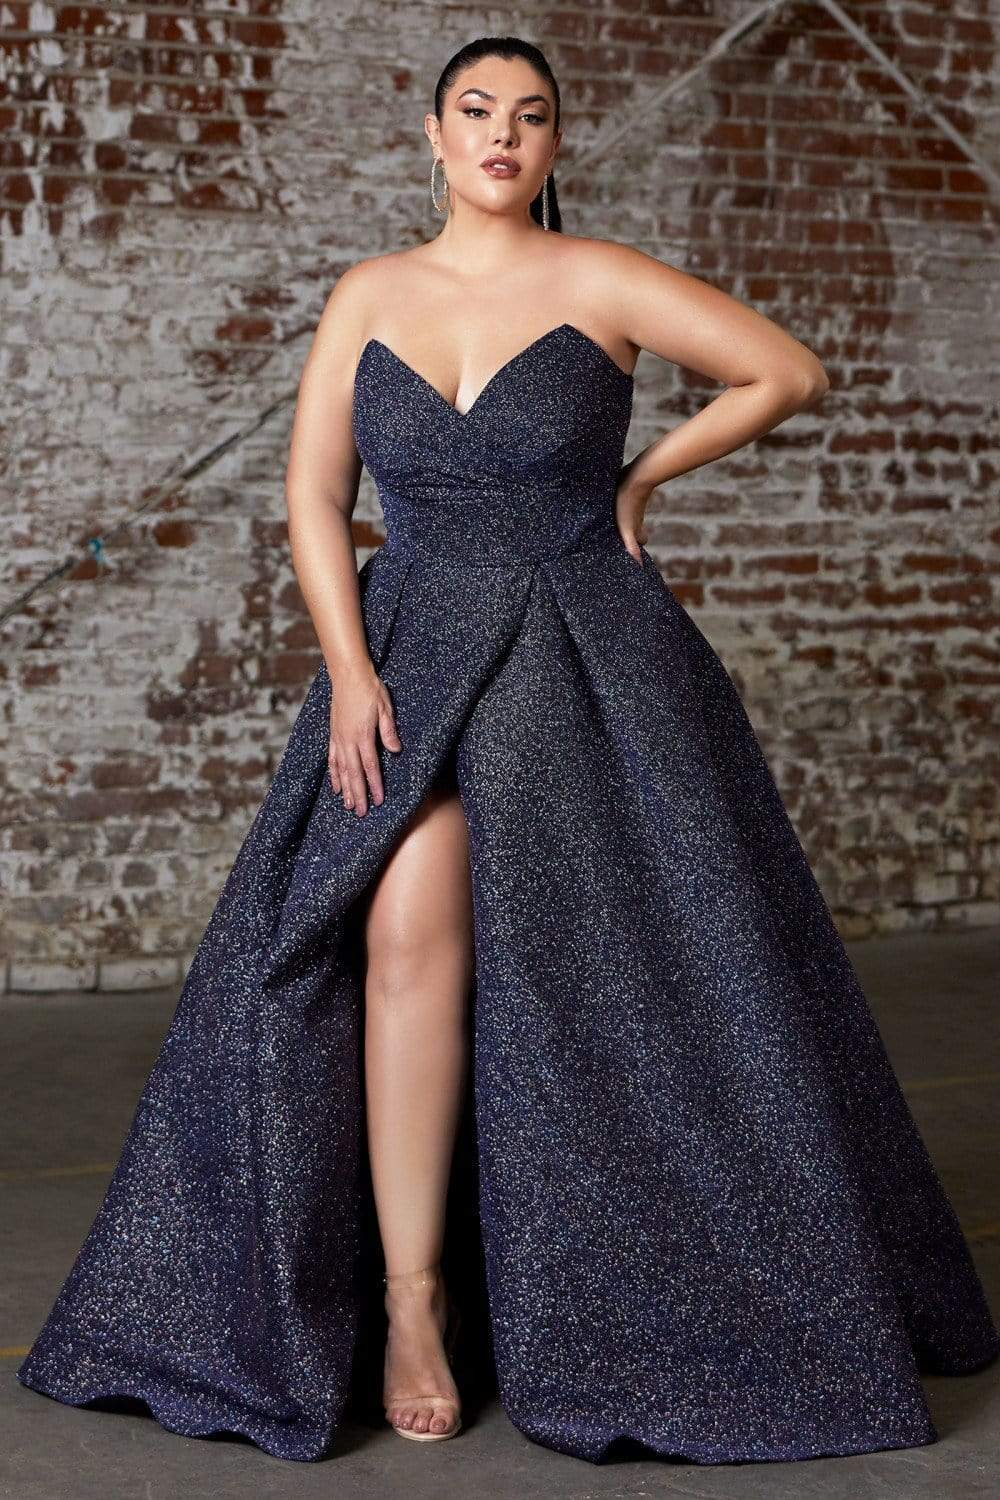 Cinderella Divine - CB045C Strapless Neck High Slit Glitter Ballgown Evening Dresses 16 / Midnight